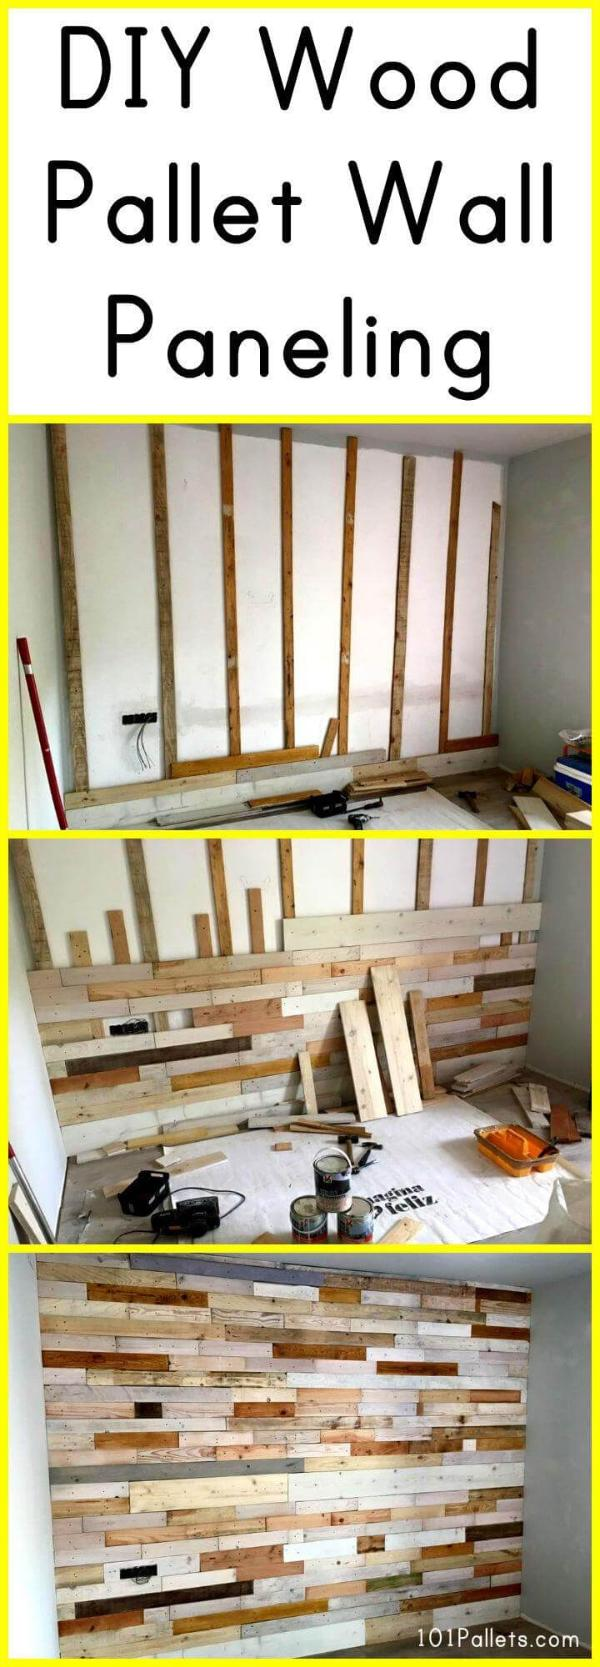 Diy Wood Pallet Wall Paneling 101 Pallets